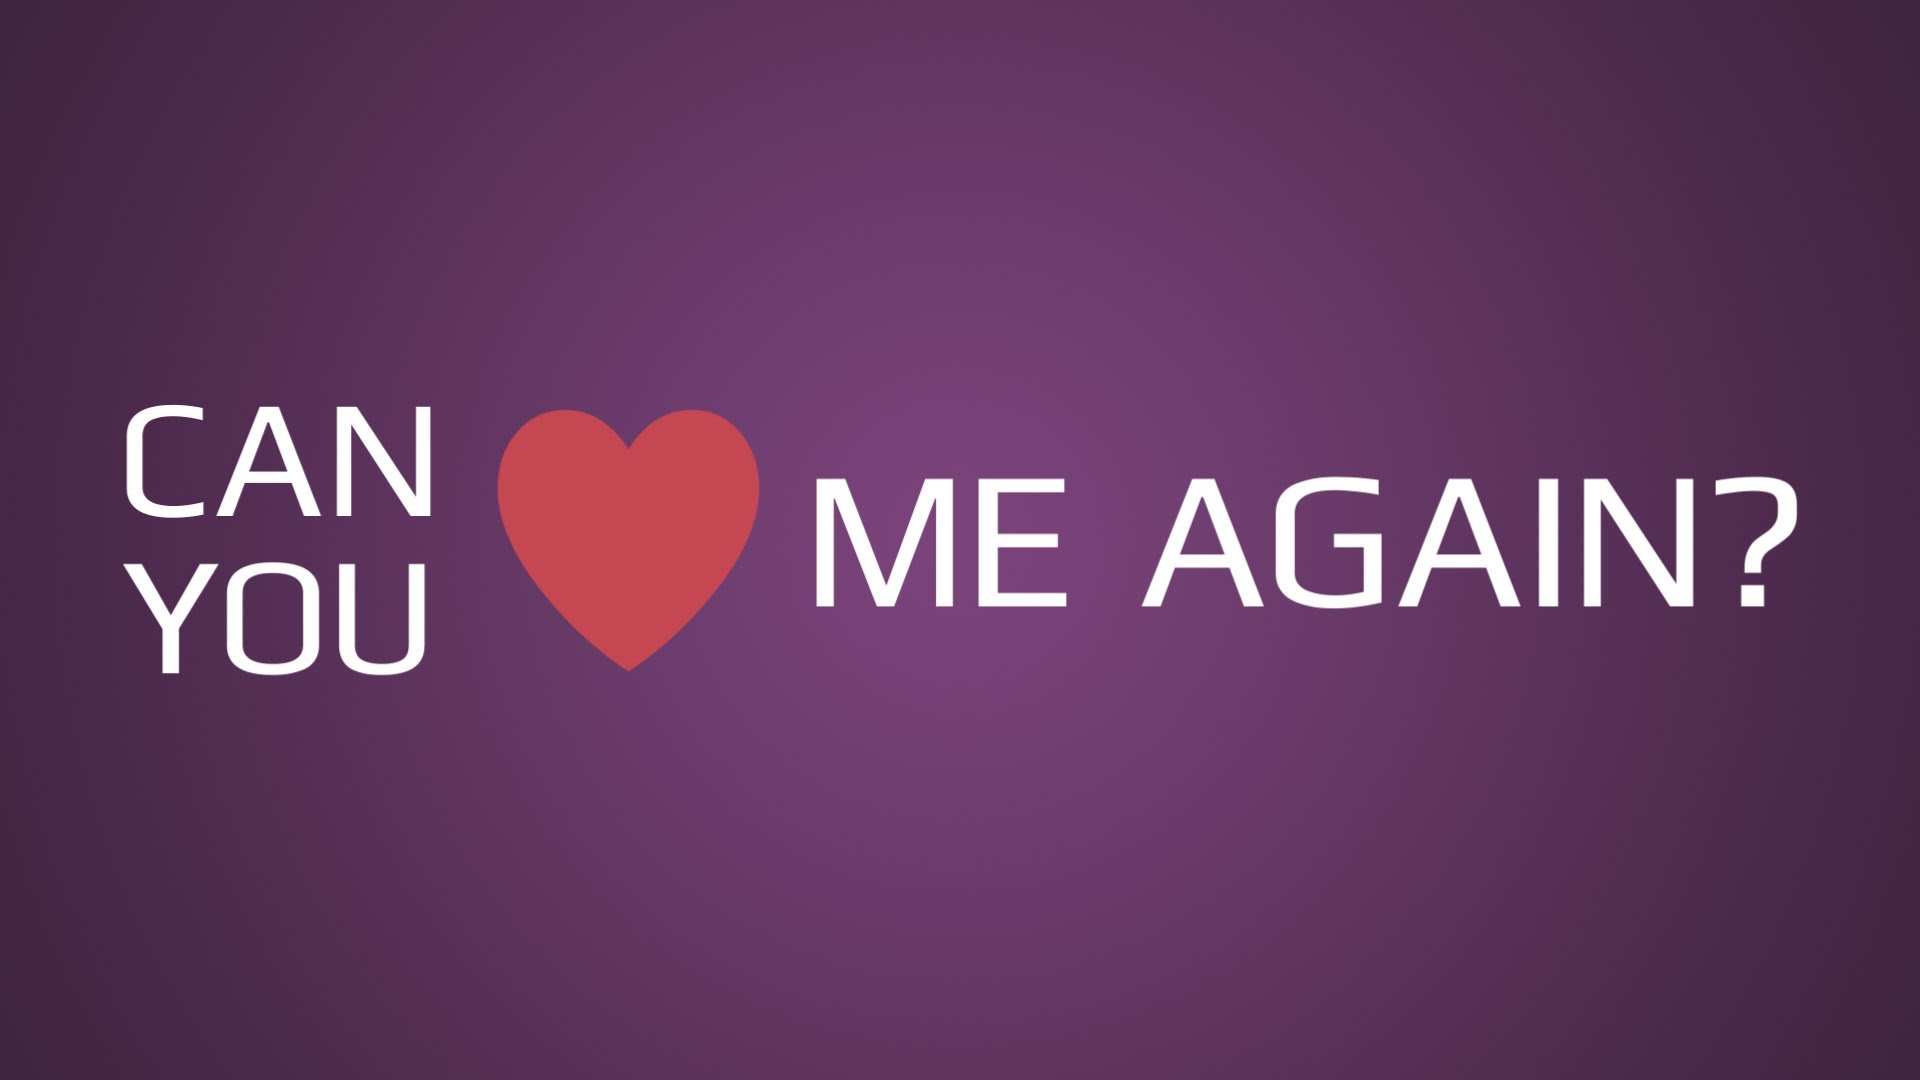 I Love Me Wallpaper Images amp Pictures   Becuo 1920x1080